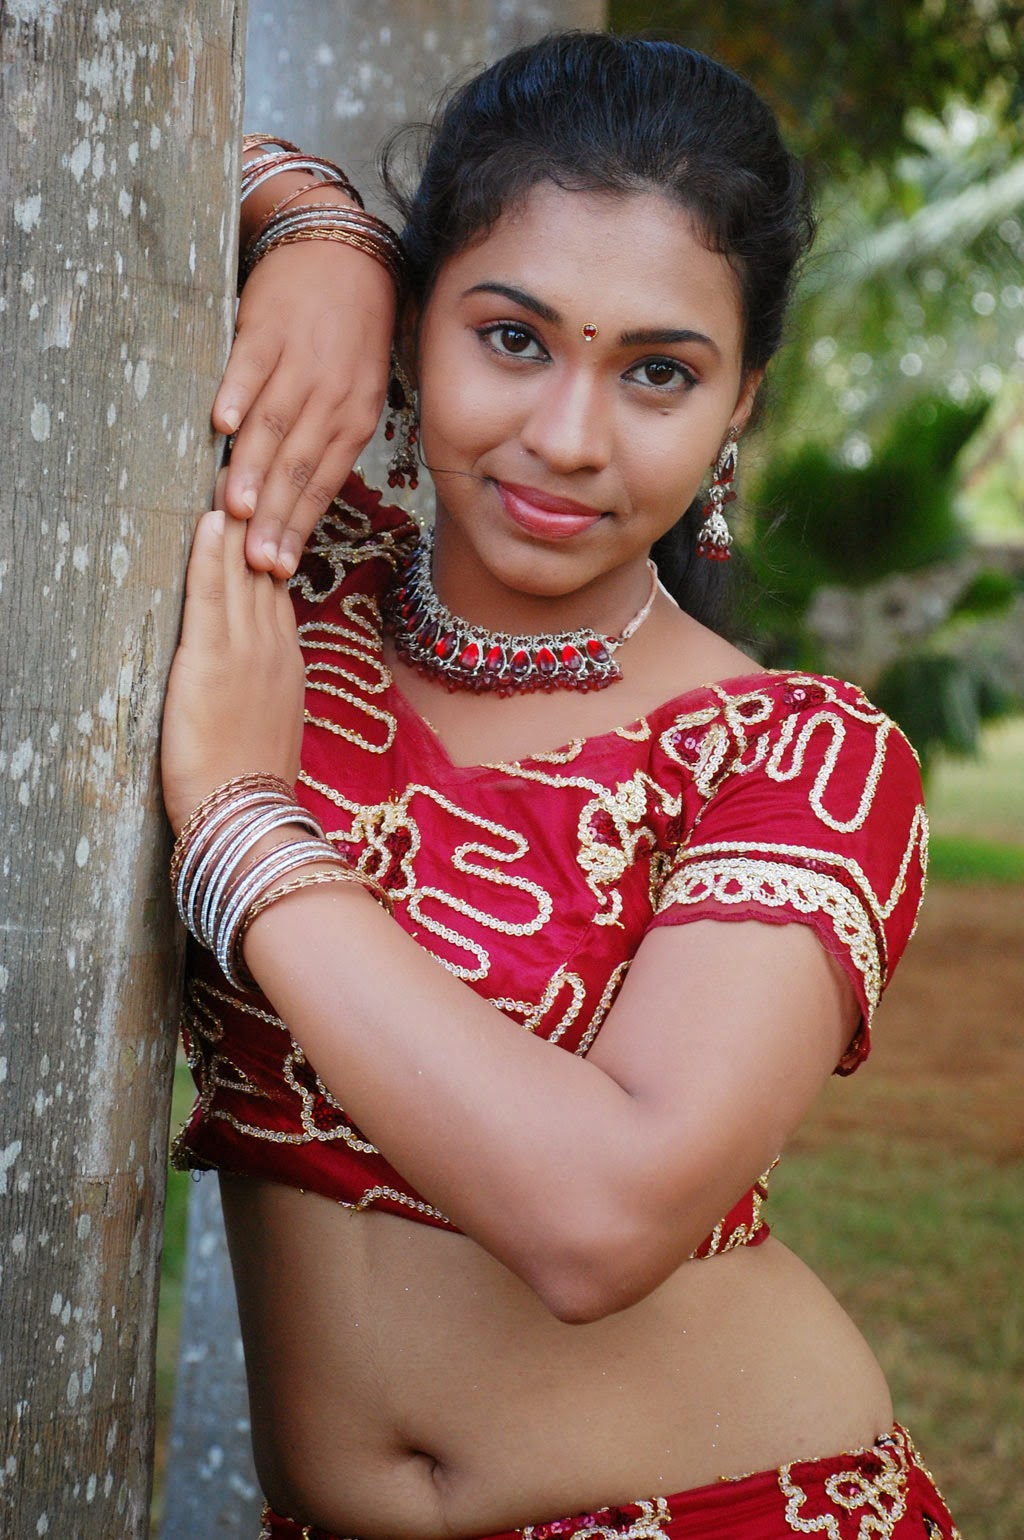 Adult female indian picture